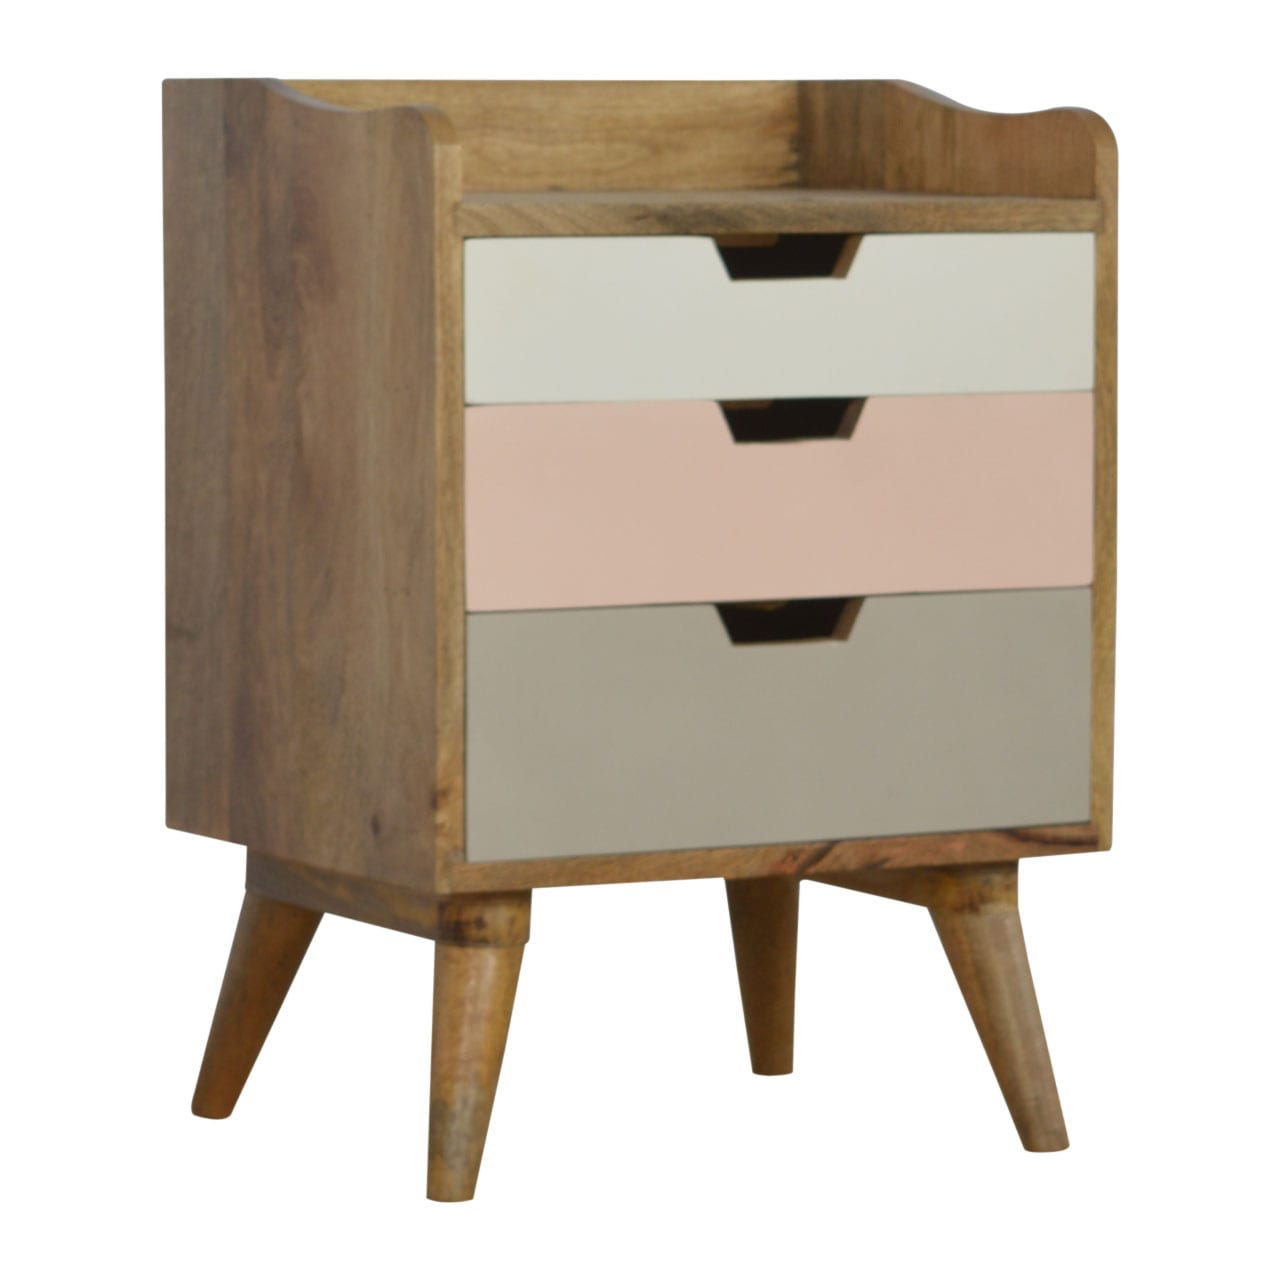 Bedside Table With Pink Painted Drawer Fronts